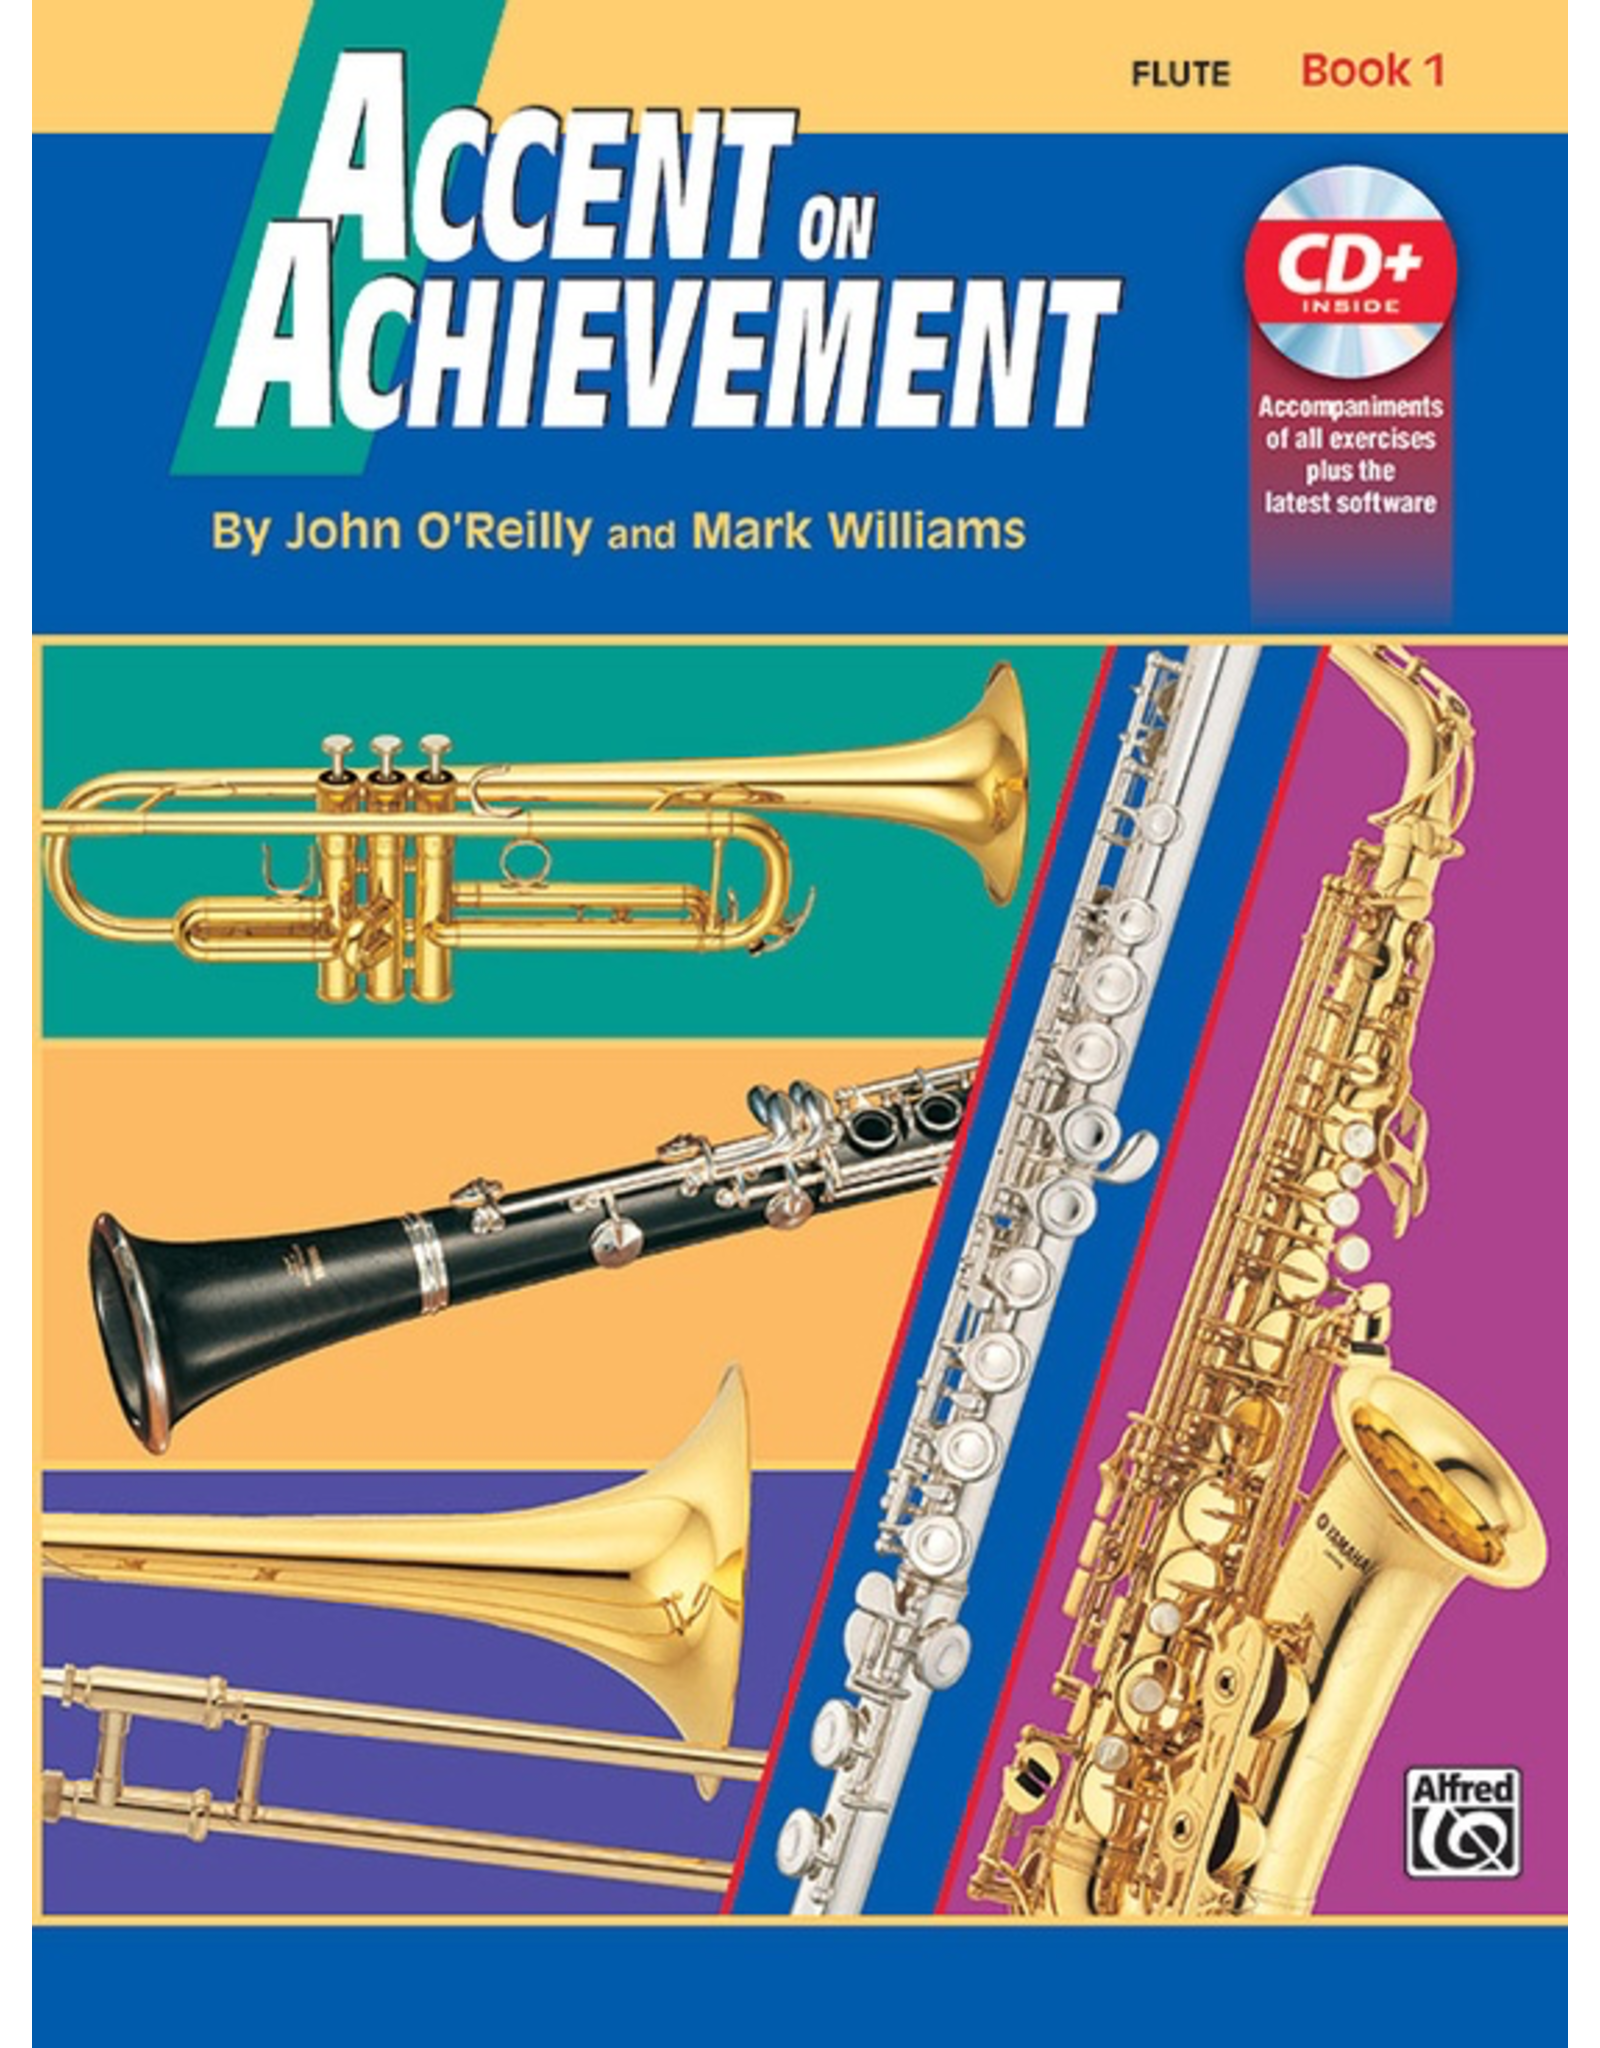 Alfred Accent on Achievement Book 1 with CD, Flute